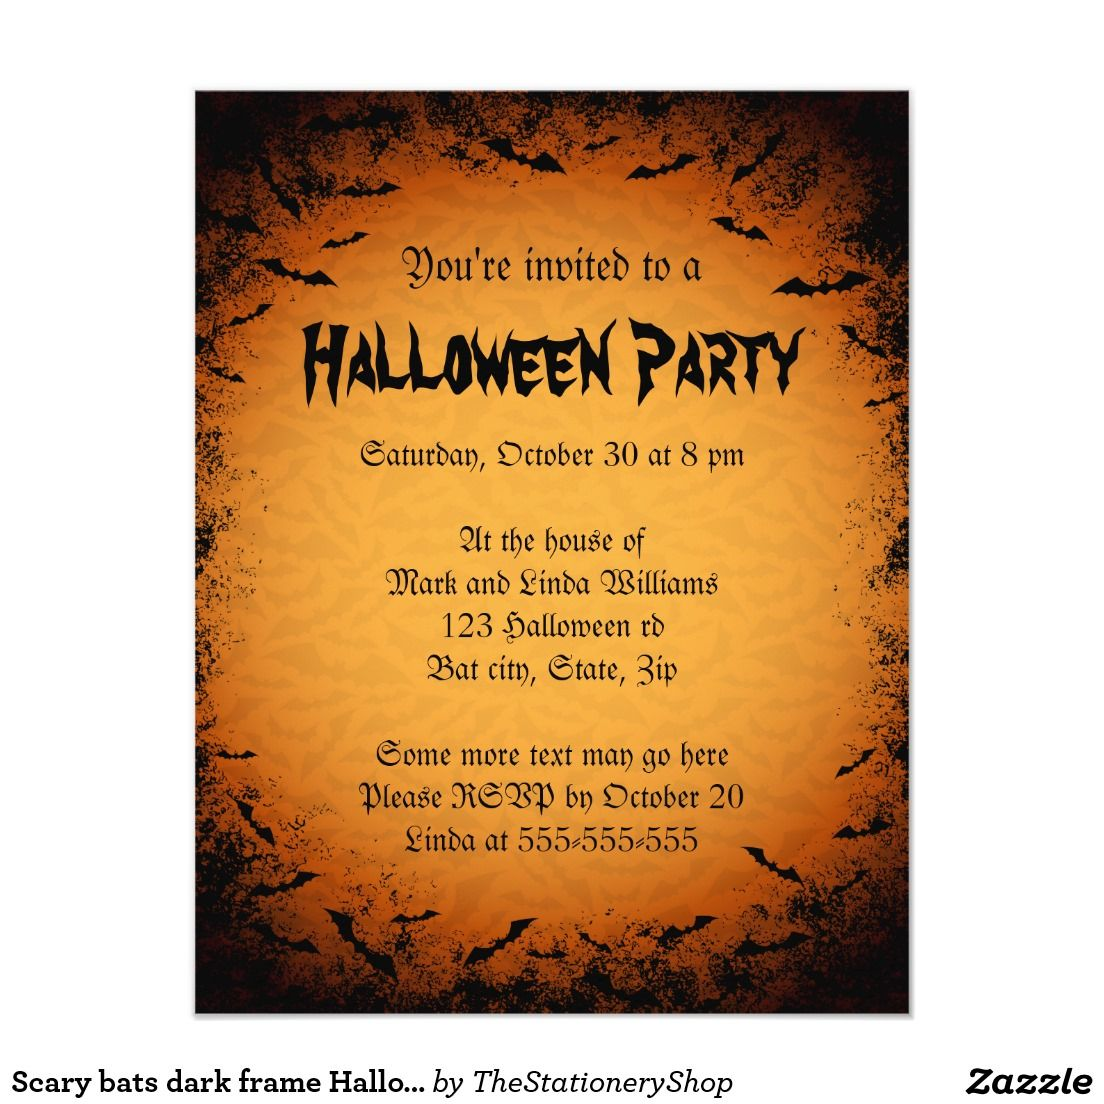 Scary bats dark frame Halloween party invitation | Trick or Treat ...